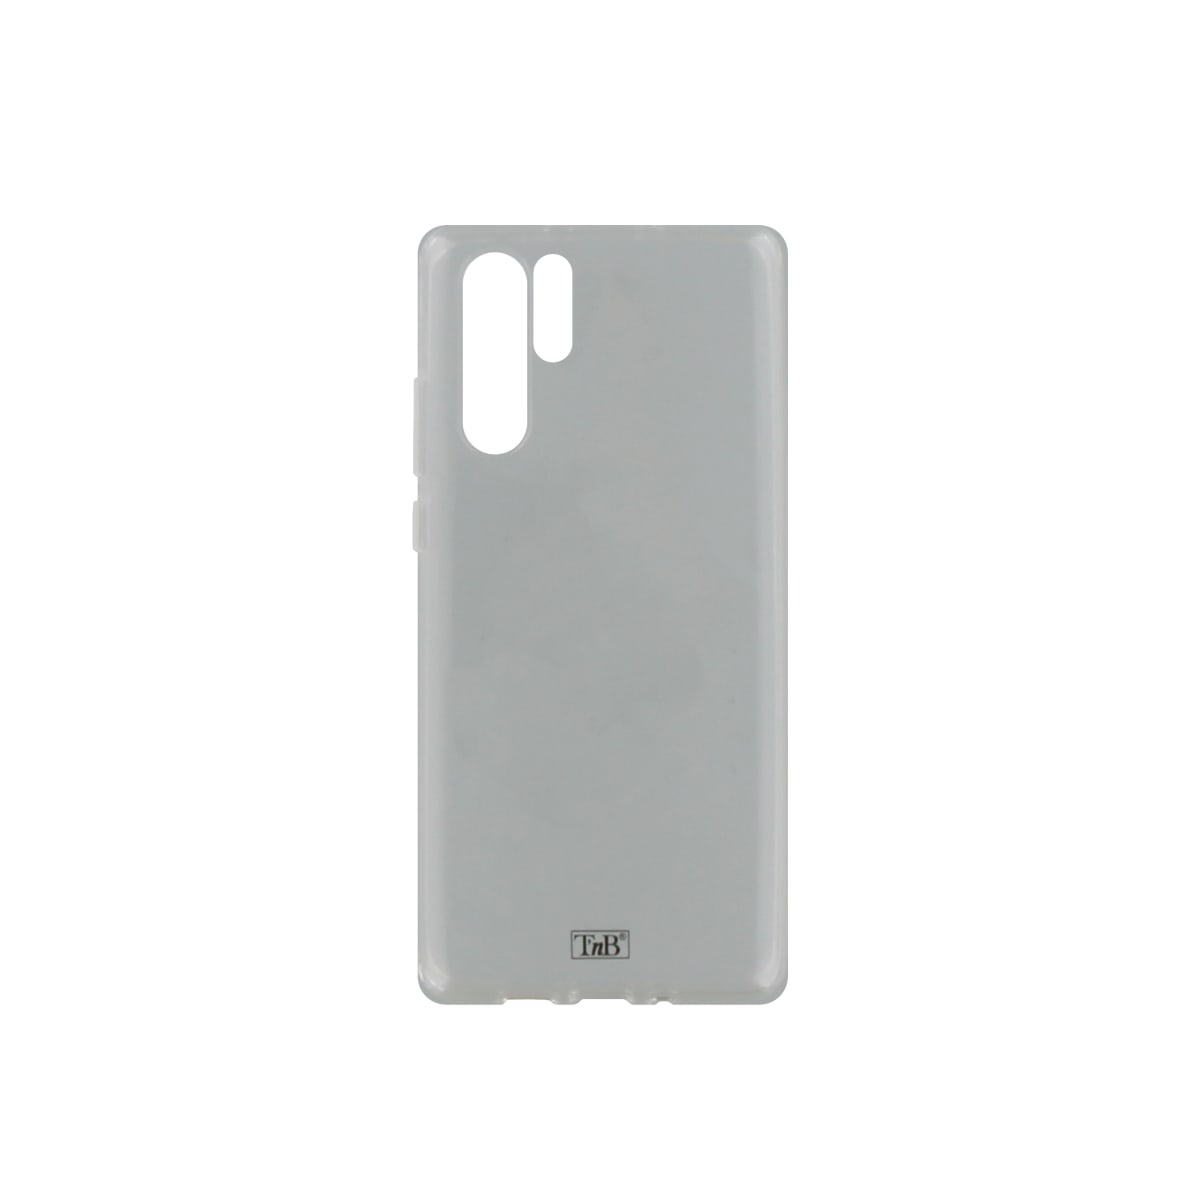 Soft case for Huawei P30 Pro